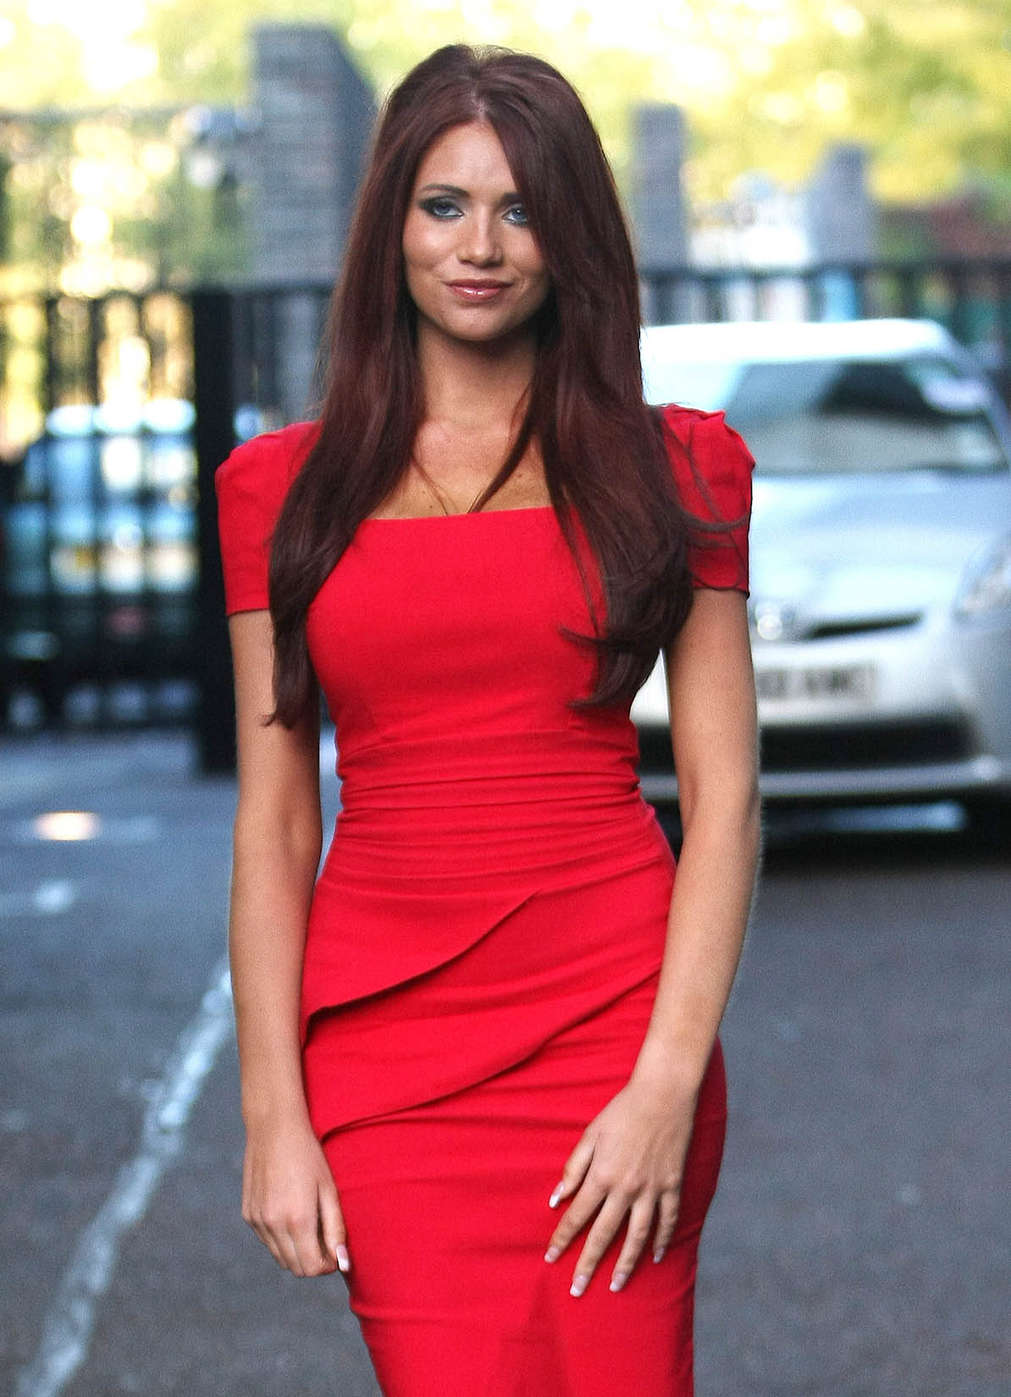 647635d4fcf Amy Childs Hot In Red Dress in London-13 – GotCeleb